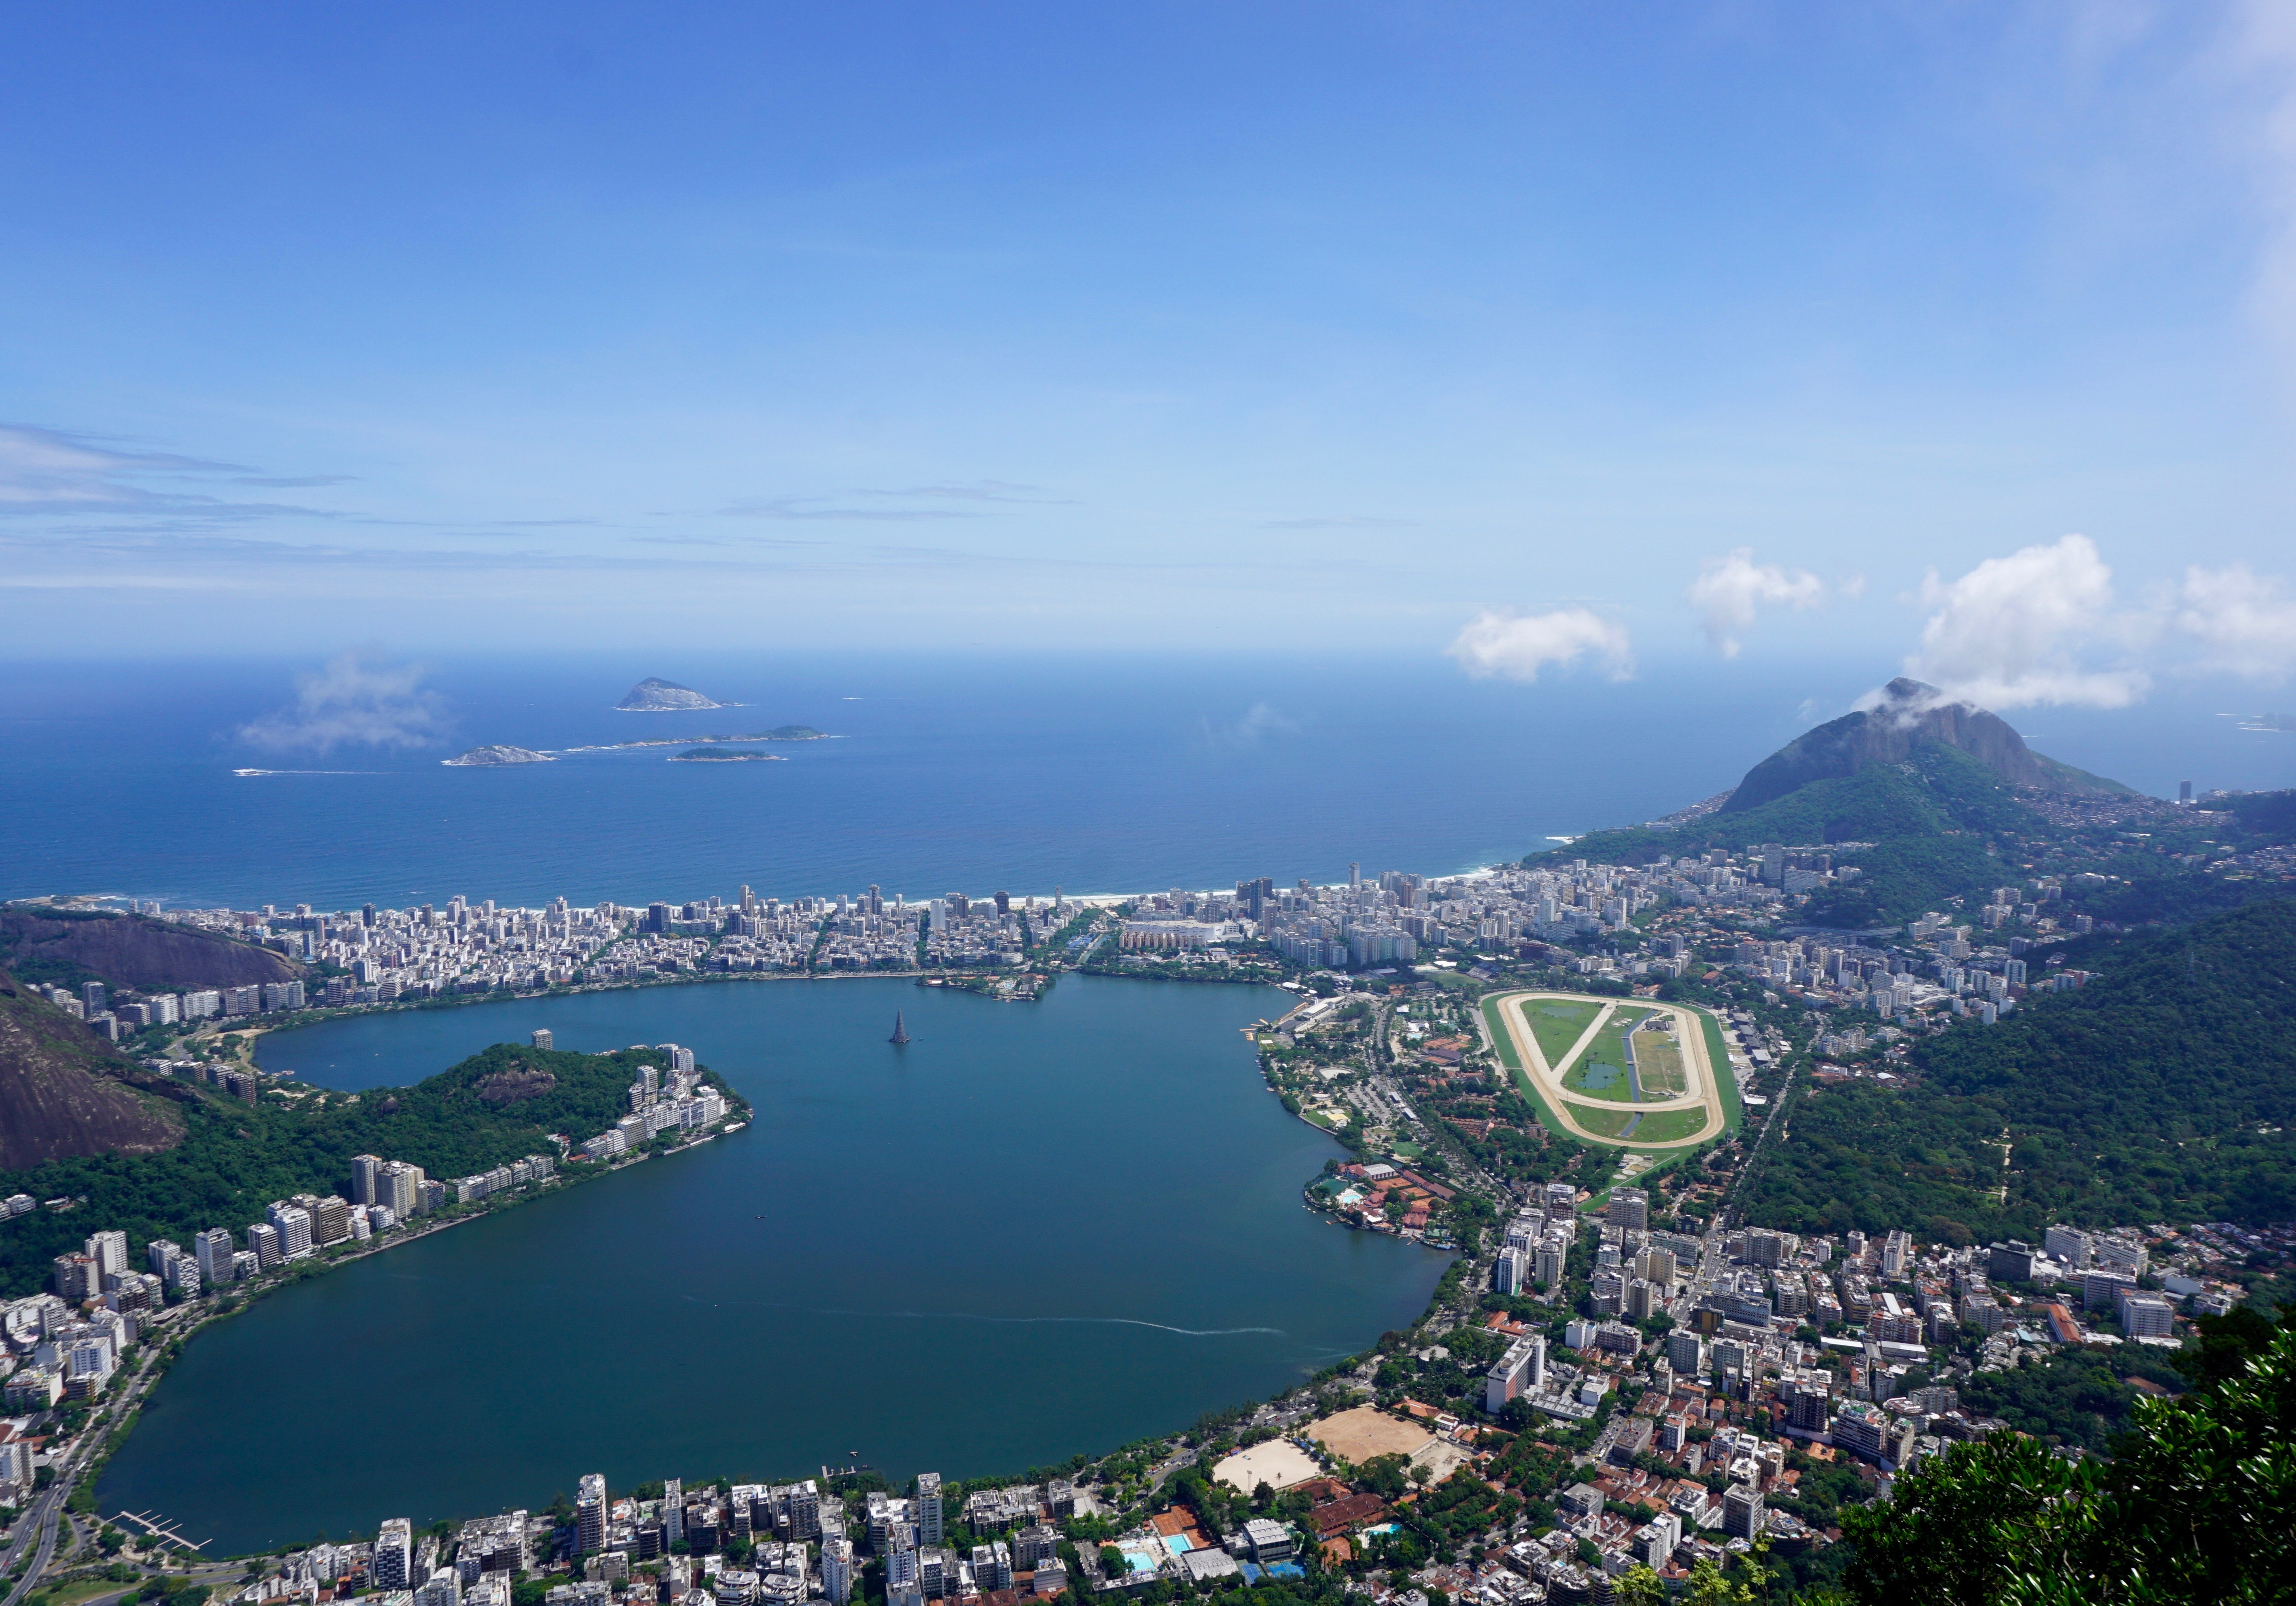 view of Lagoa from Corcovado